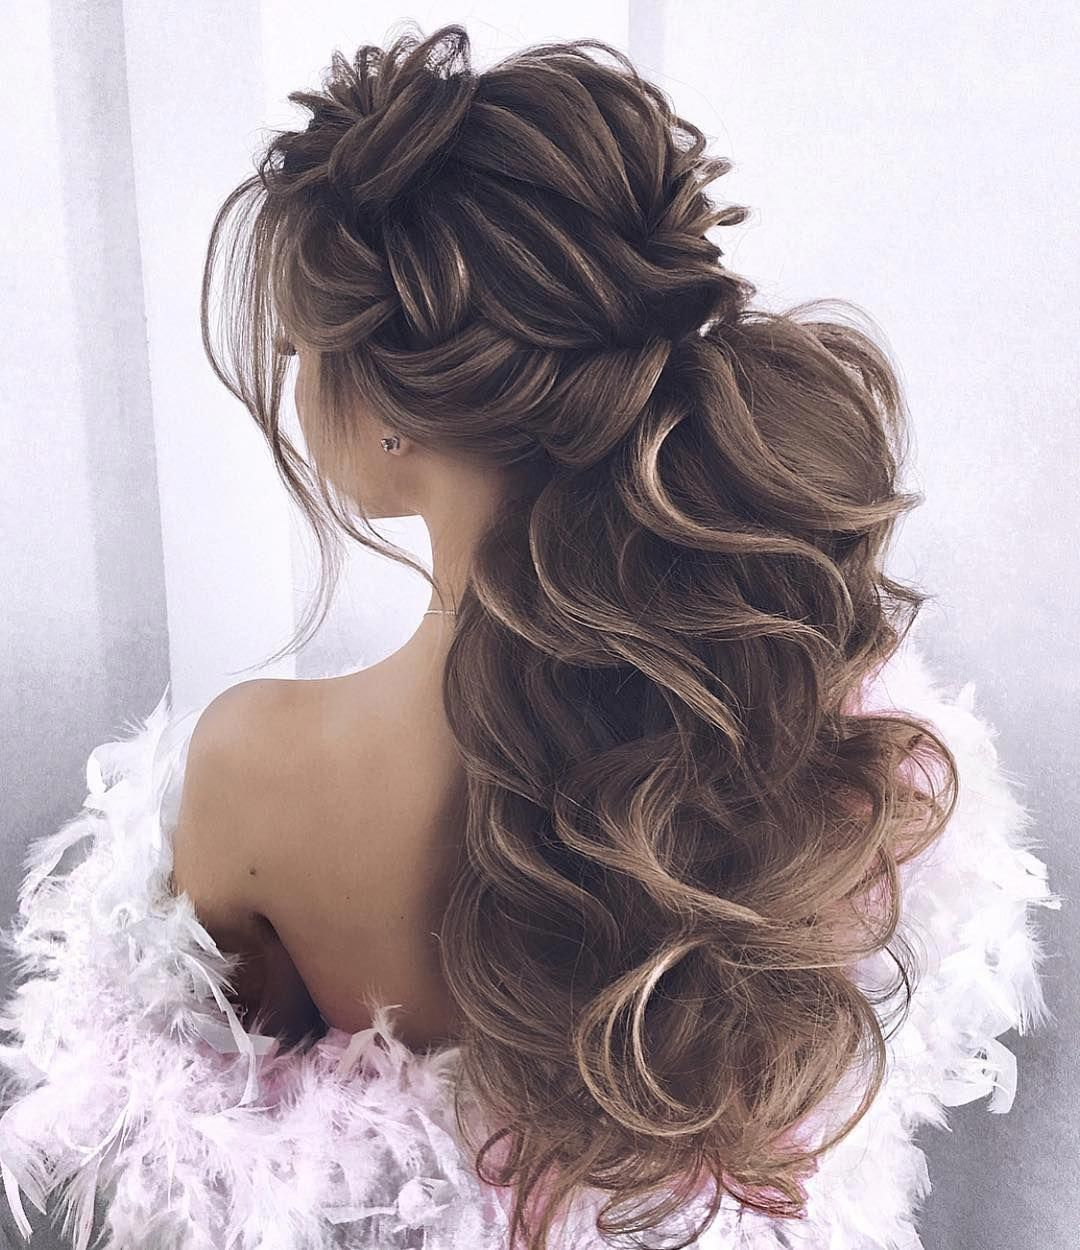 30 beautiful prom hairstyles that'll steal the night - best